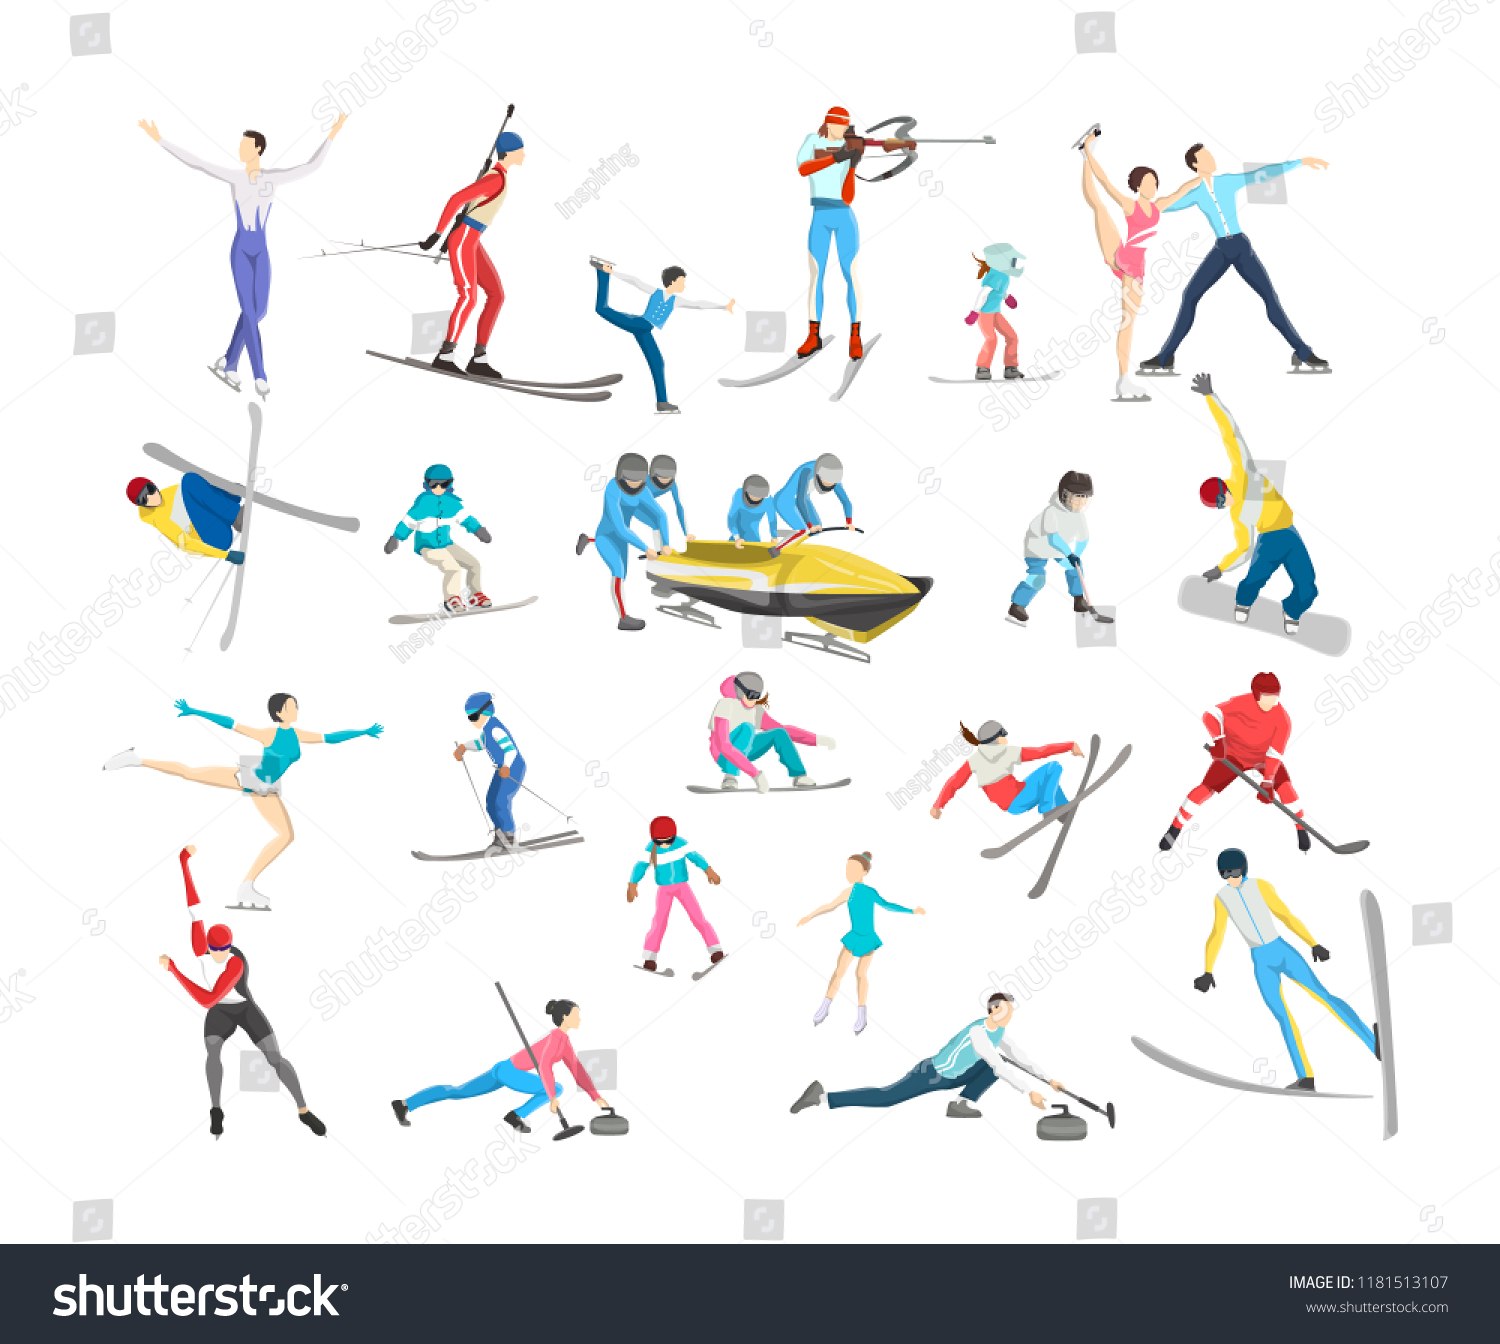 b79fa97c57 People Warm Clothes Doing Winter Sport Stock Vector (Royalty Free ...